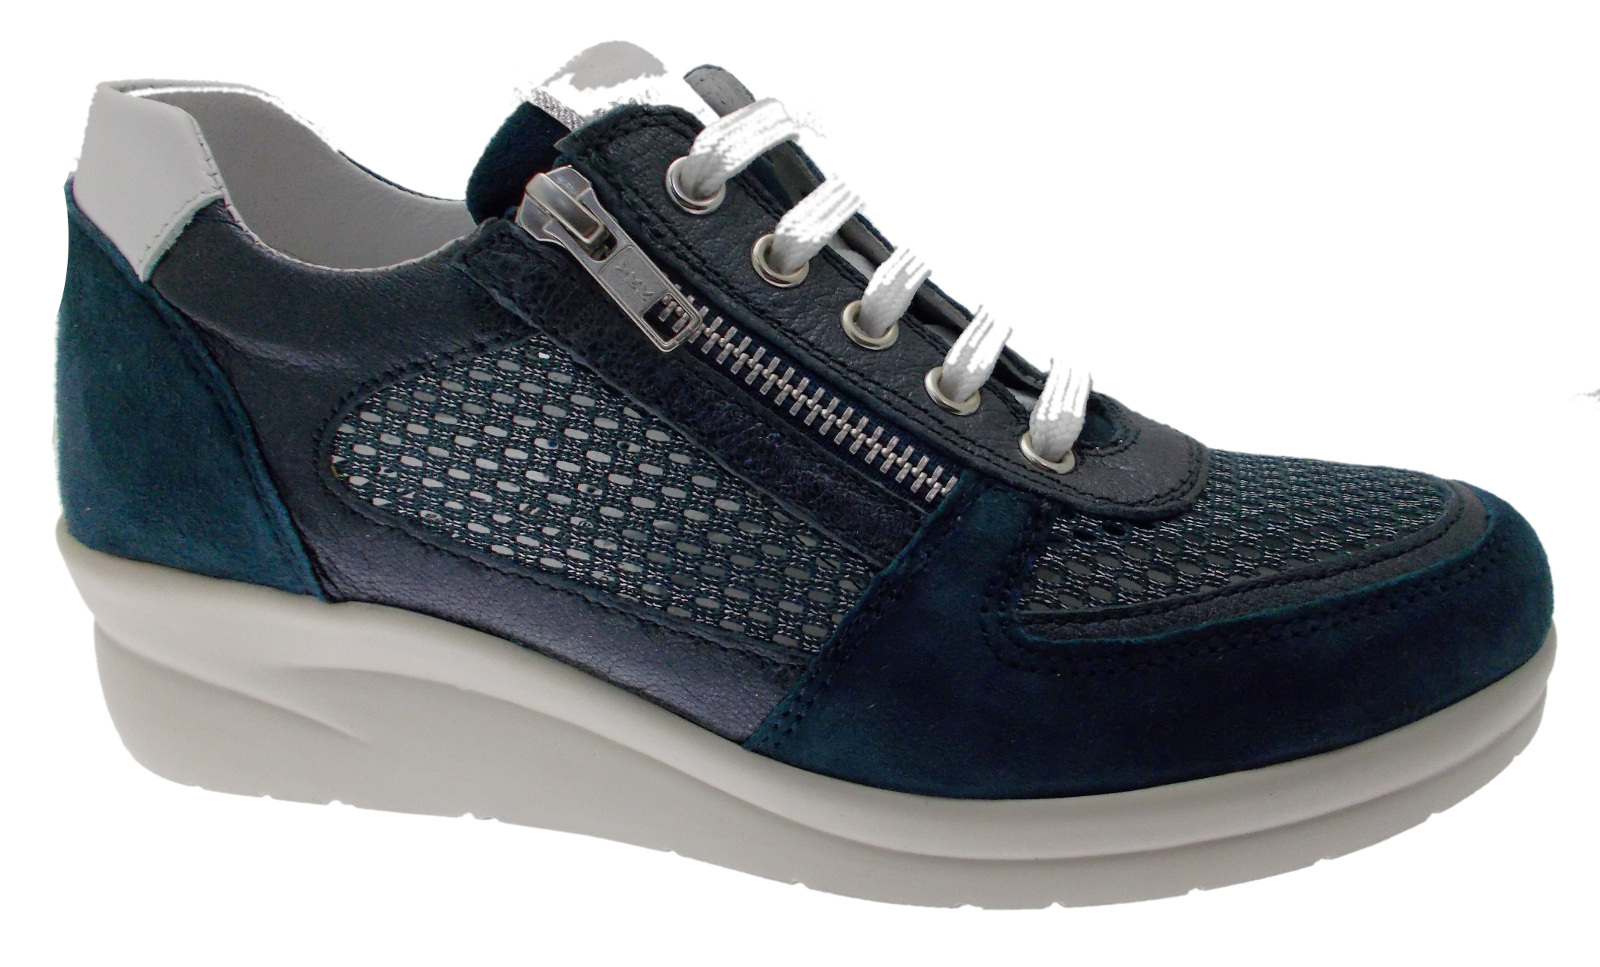 75652 Blau Turnschuhe with arch laces Riposella